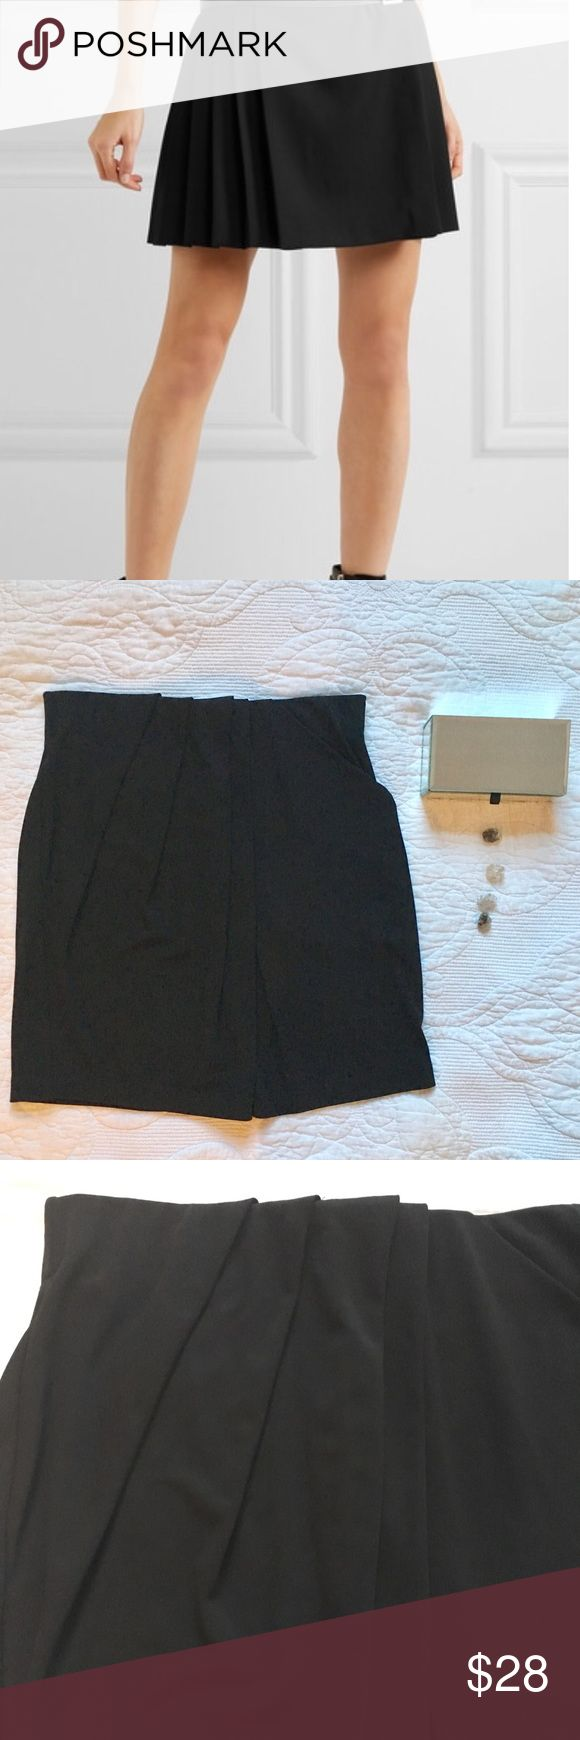 BCBGMaxAzriaPleated Faux Wrap Mini Skirt XXS Adorable little mini skirt with Pleated detail and faux wrap look. Side slit pocket!! Slinky stretchy synthetic material. Elastic waist. Size xxs.  Pls see photos for approx measurements but pls keep in mind quite stretchy. First photo is stock and for style reference only. Back is not pleated. BCBGMaxAzria Skirts Mini